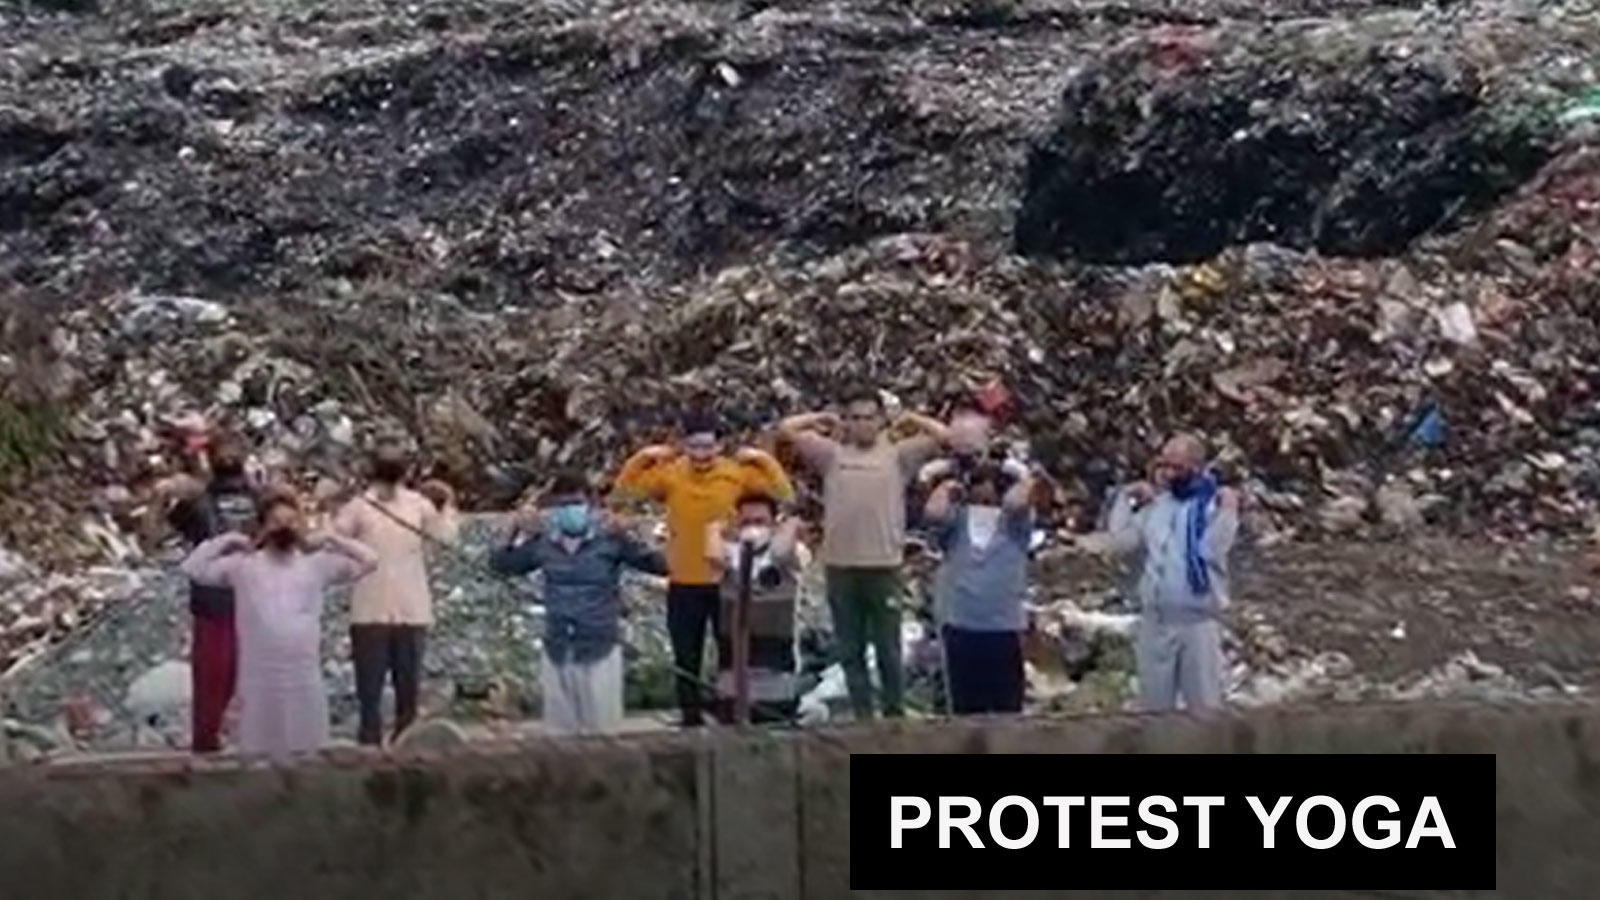 haldwani-these-people-performed-yoga-on-garbage-heaps-to-register-protest